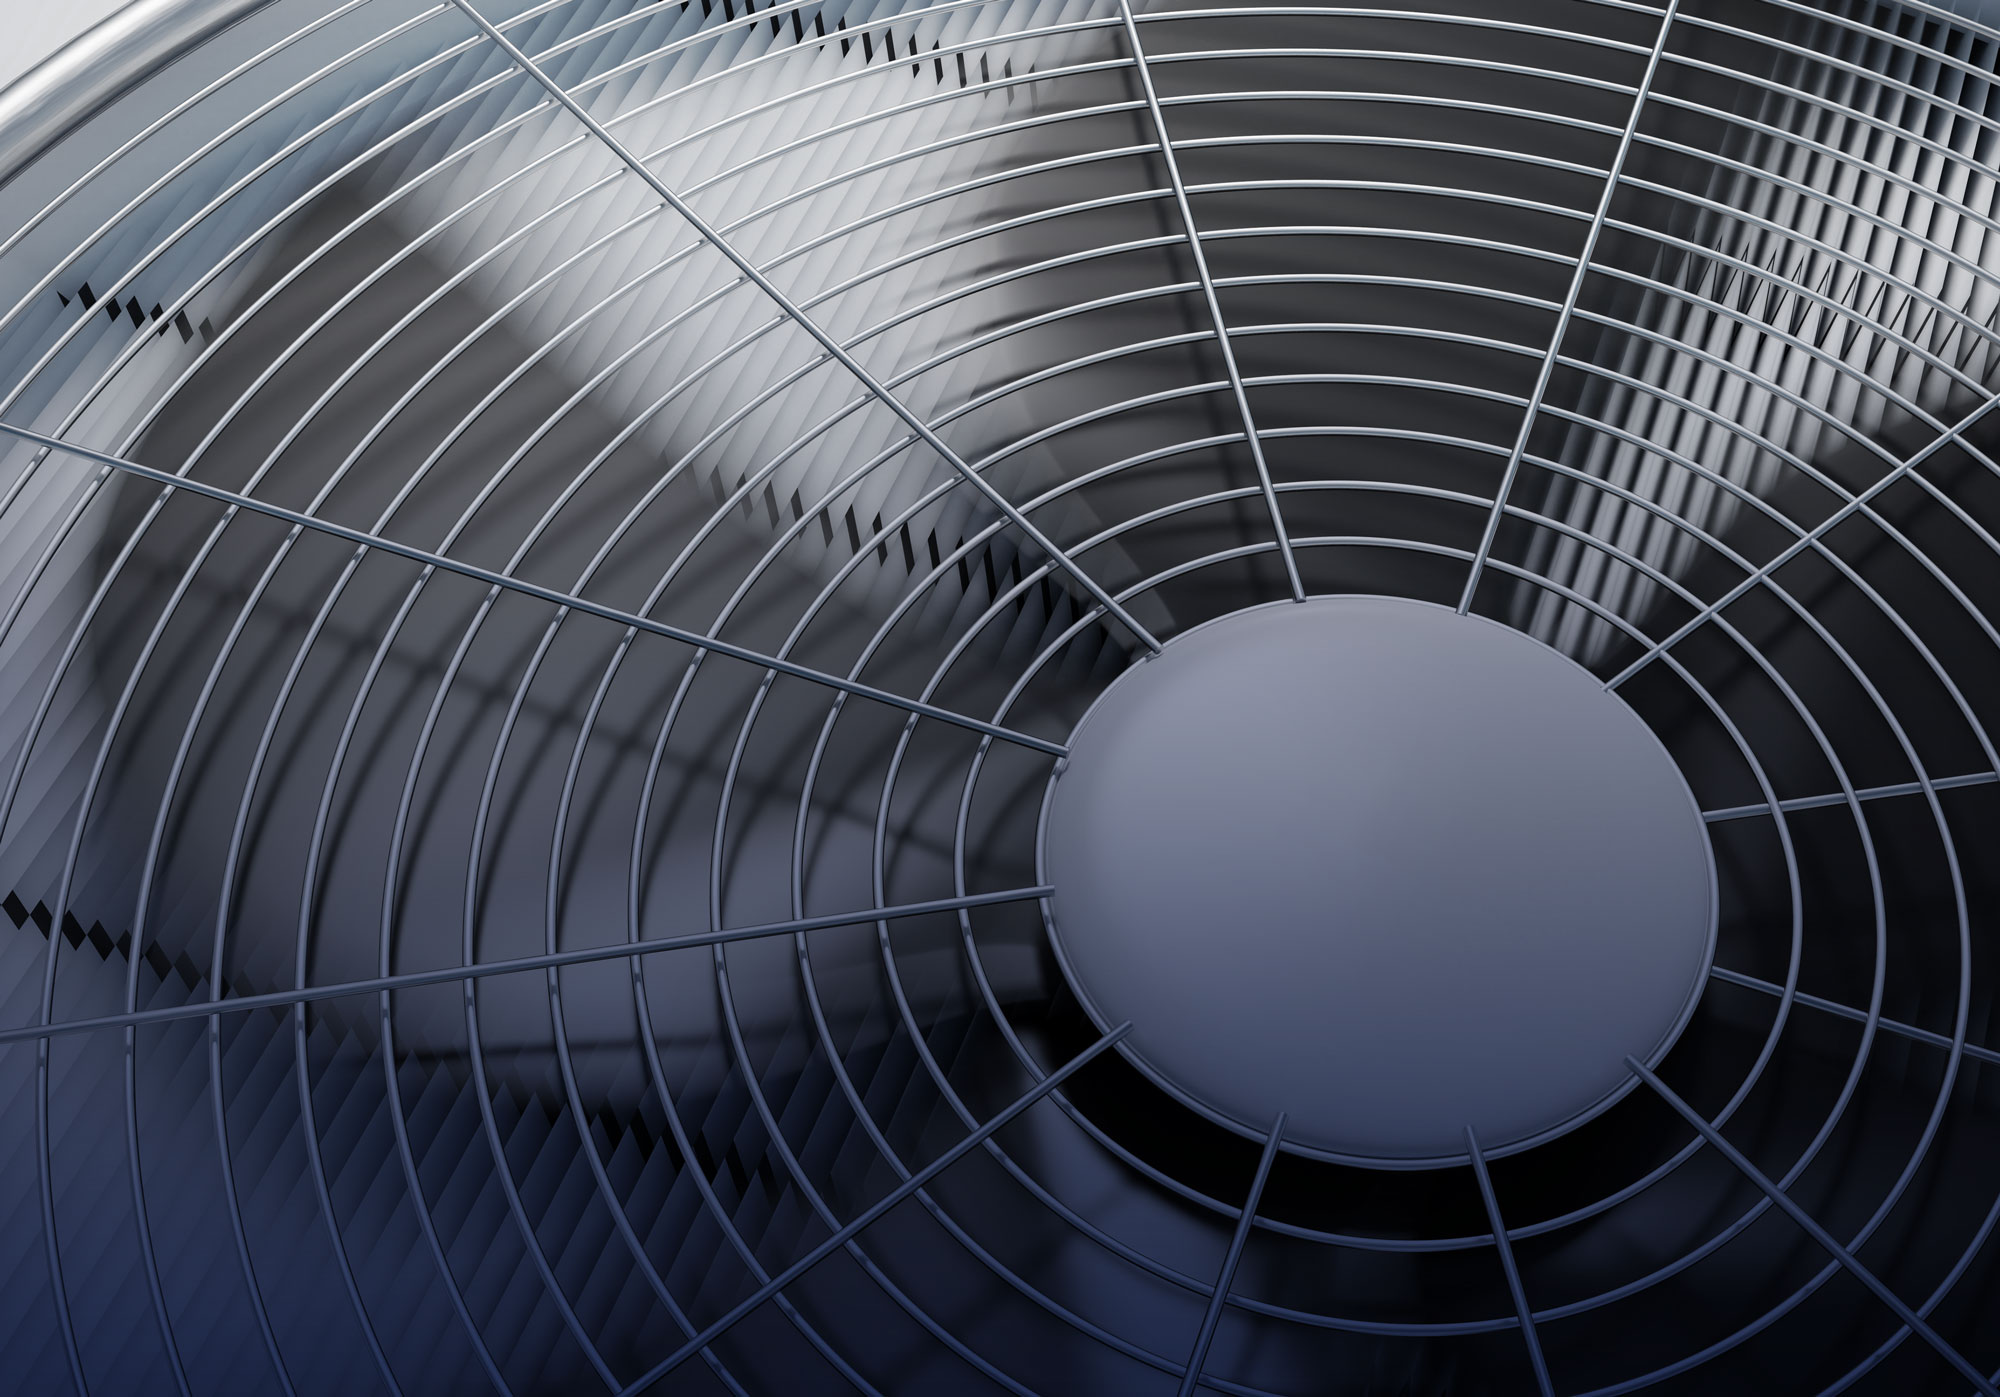 How to take care of your heating and air conditioning systems like a pro